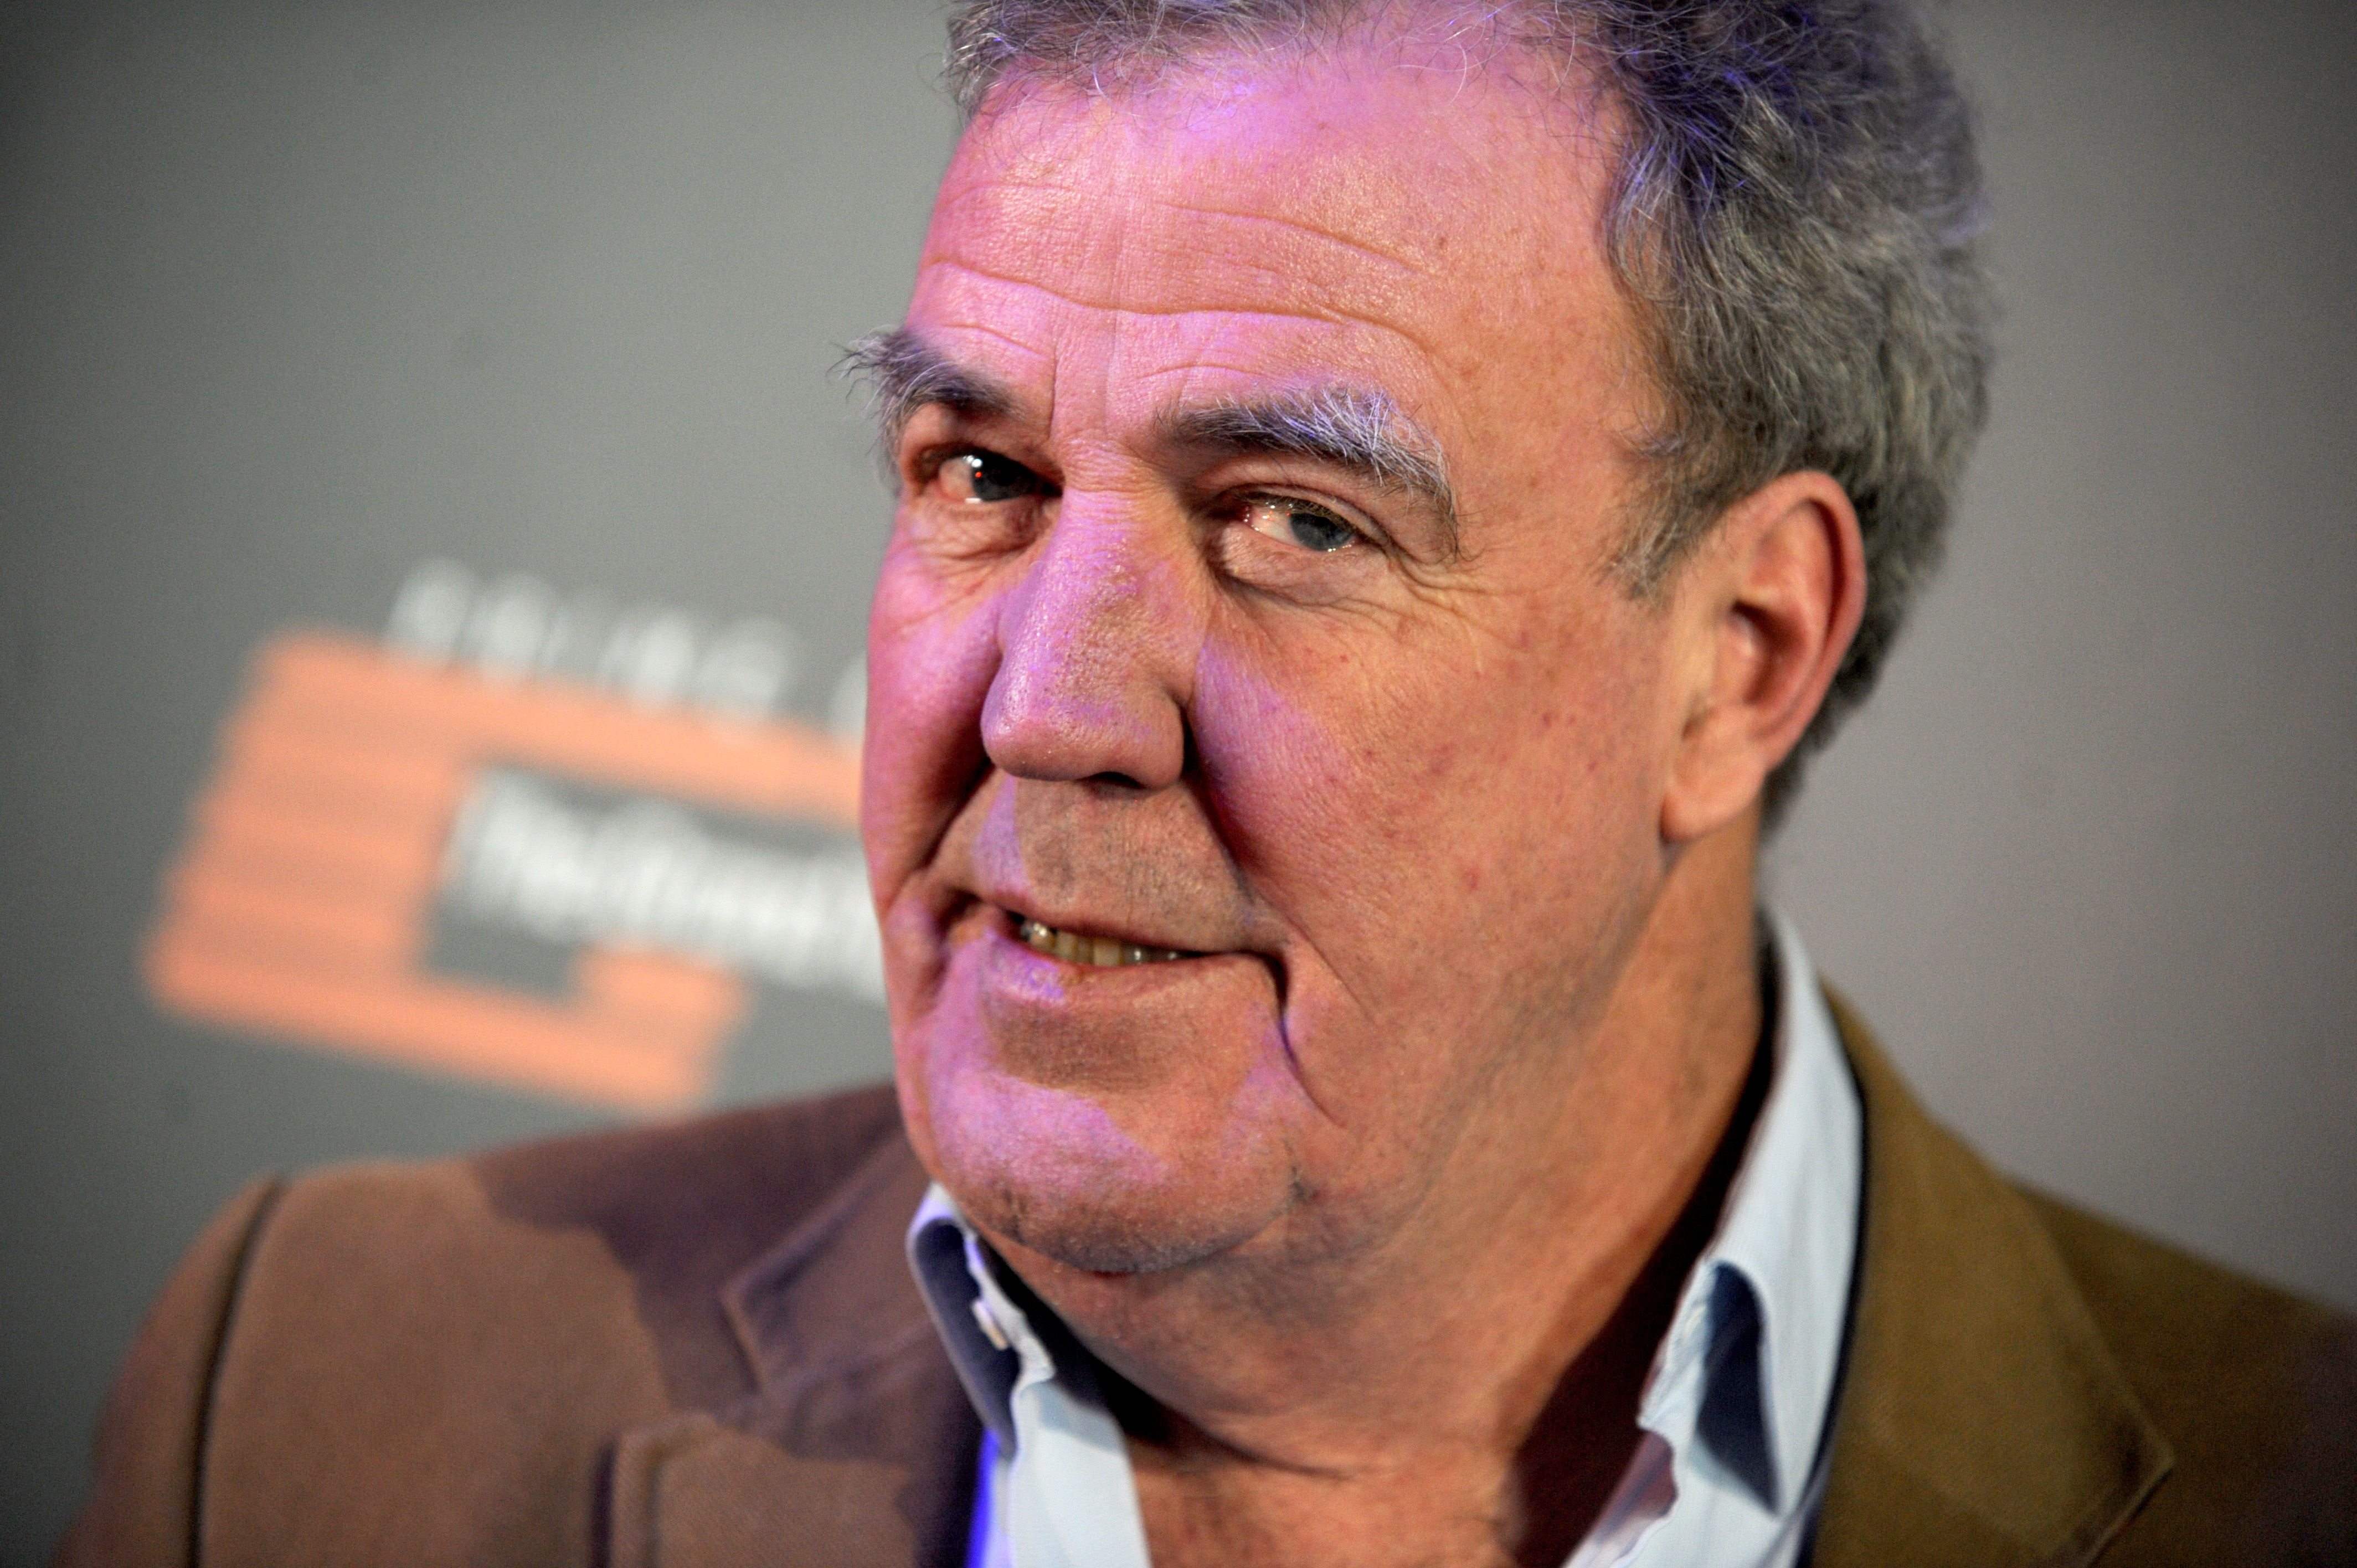 Jeremy Clarkson Punched A Man Who Got His Order Wrong But Says Greta Thunberg Is The 'Spoilt Brat'